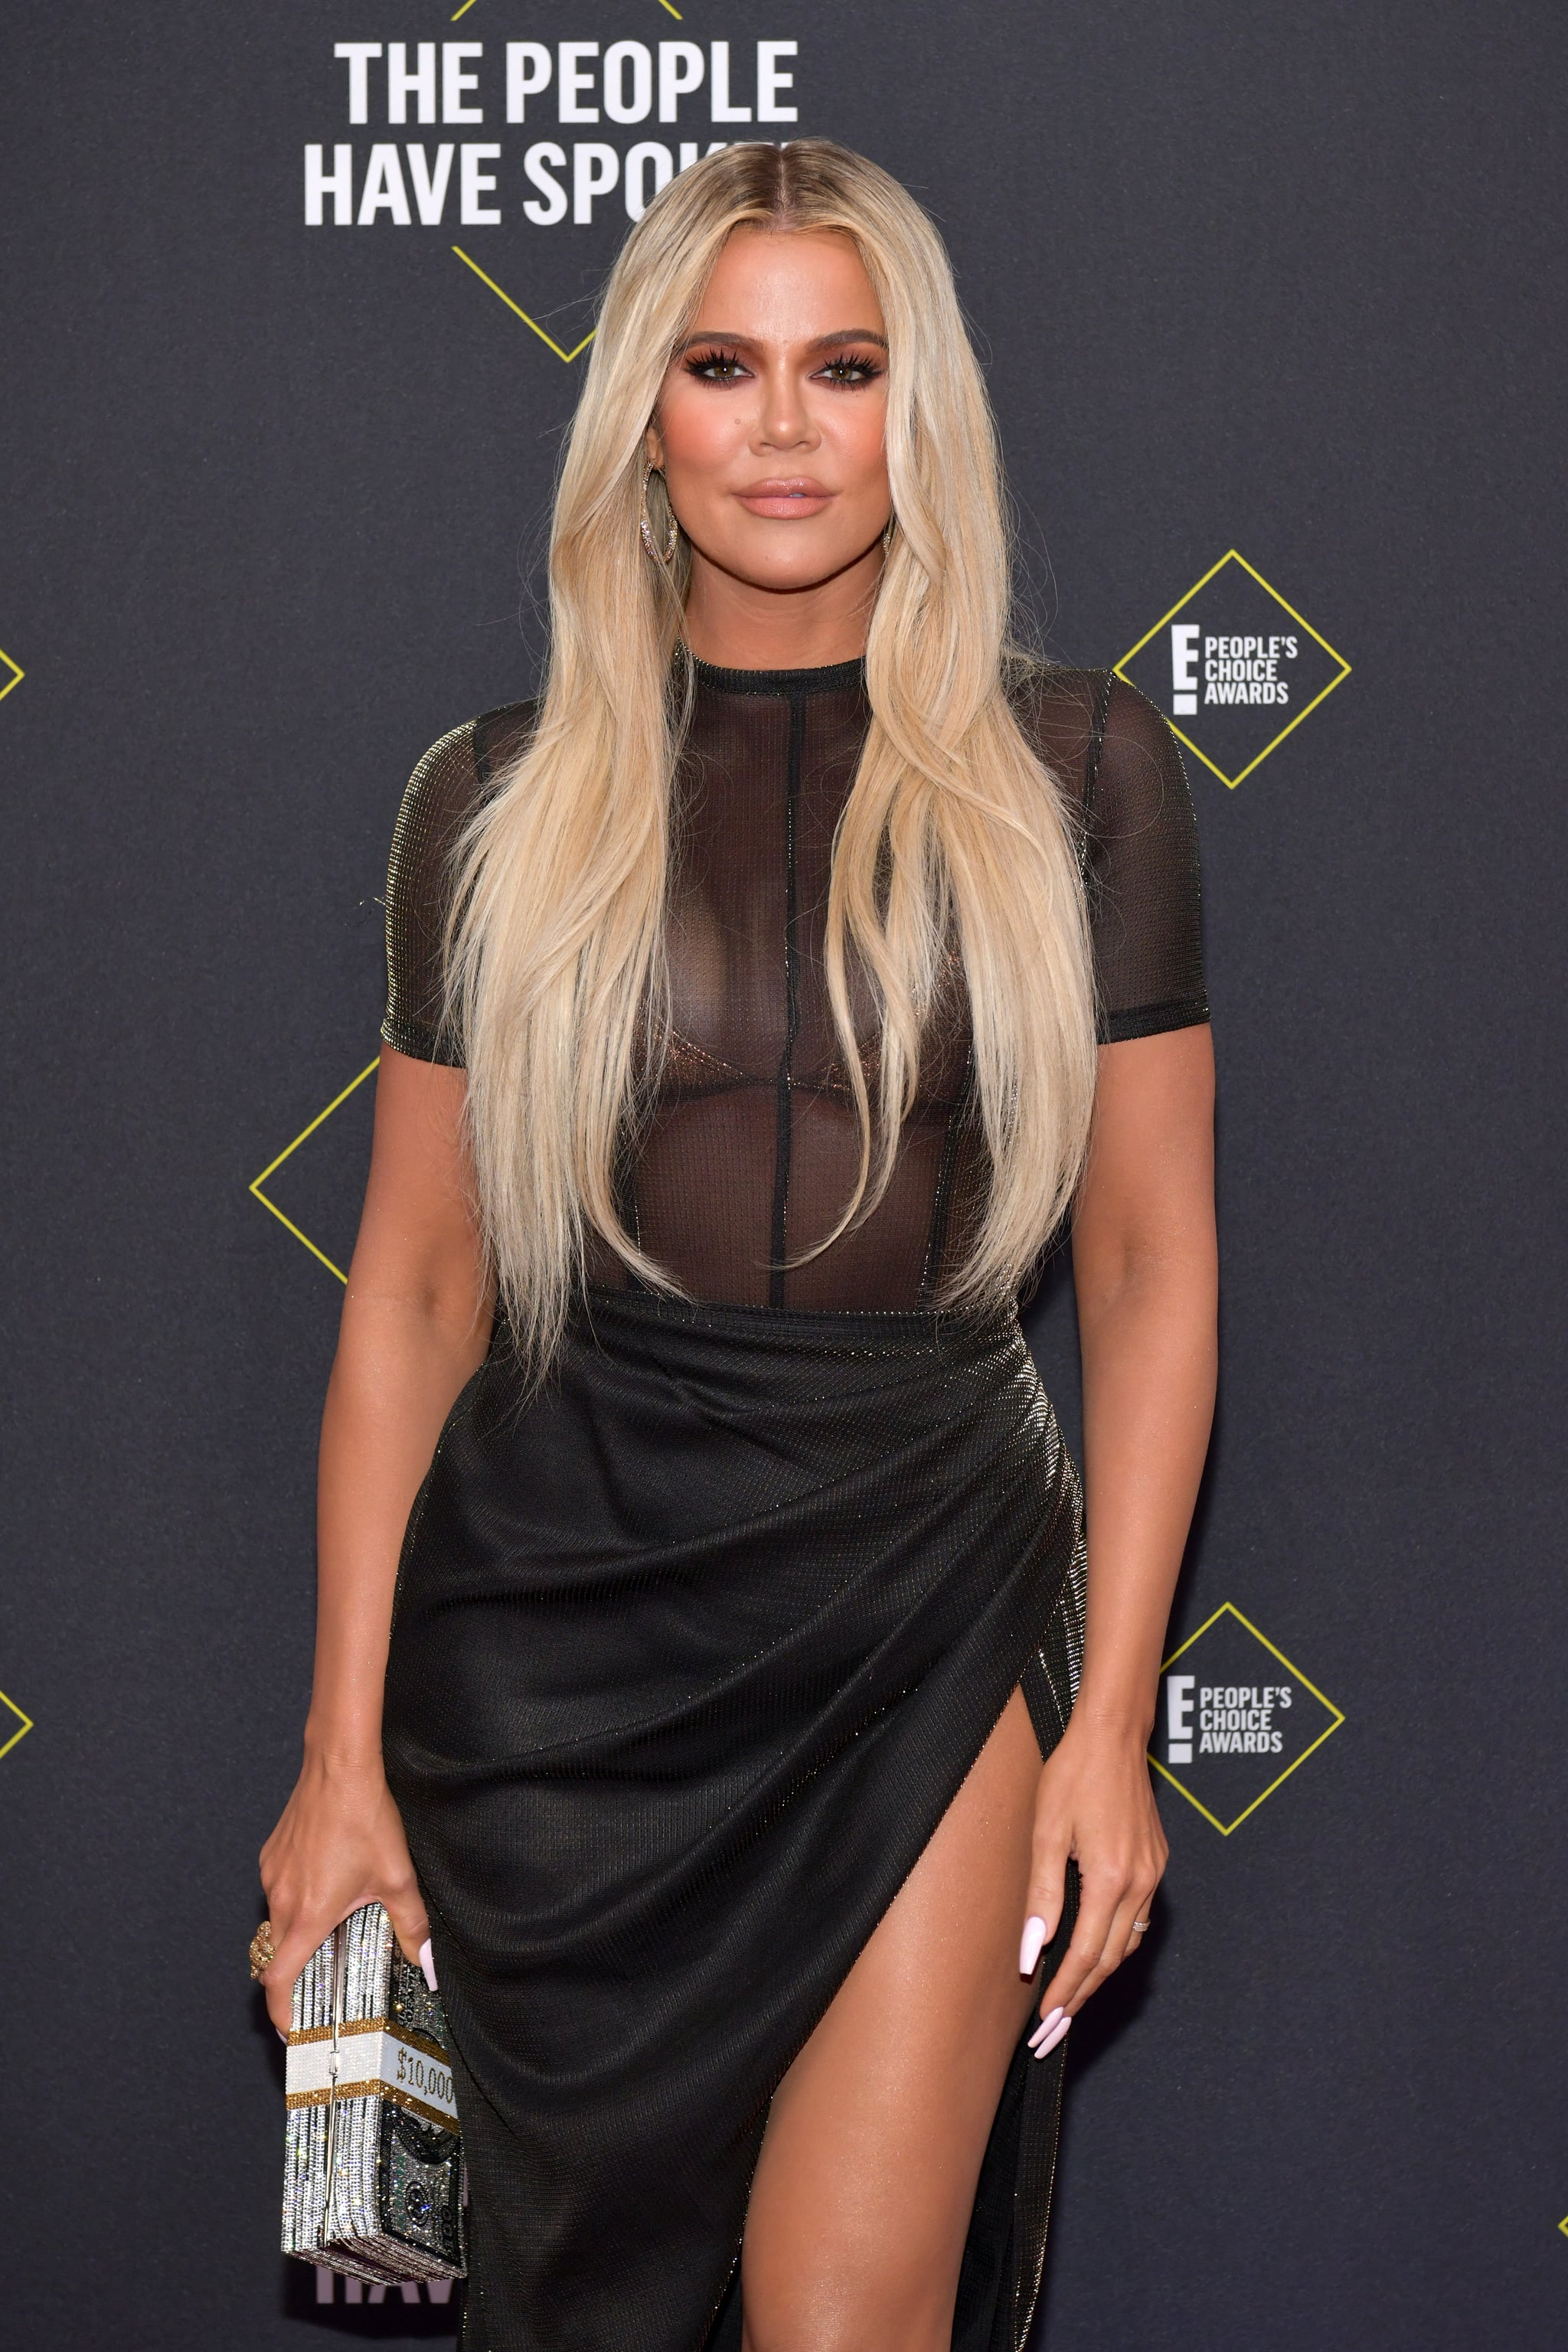 SANTA MONICA, CALIFORNIA - NOVEMBER 10: Khloé Kardashian attends the 2019 E! People's Choice Awards at Barker Hangar on November 10, 2019 in Santa Monica, California. (Photo by Rodin Eckenroth/WireImage)